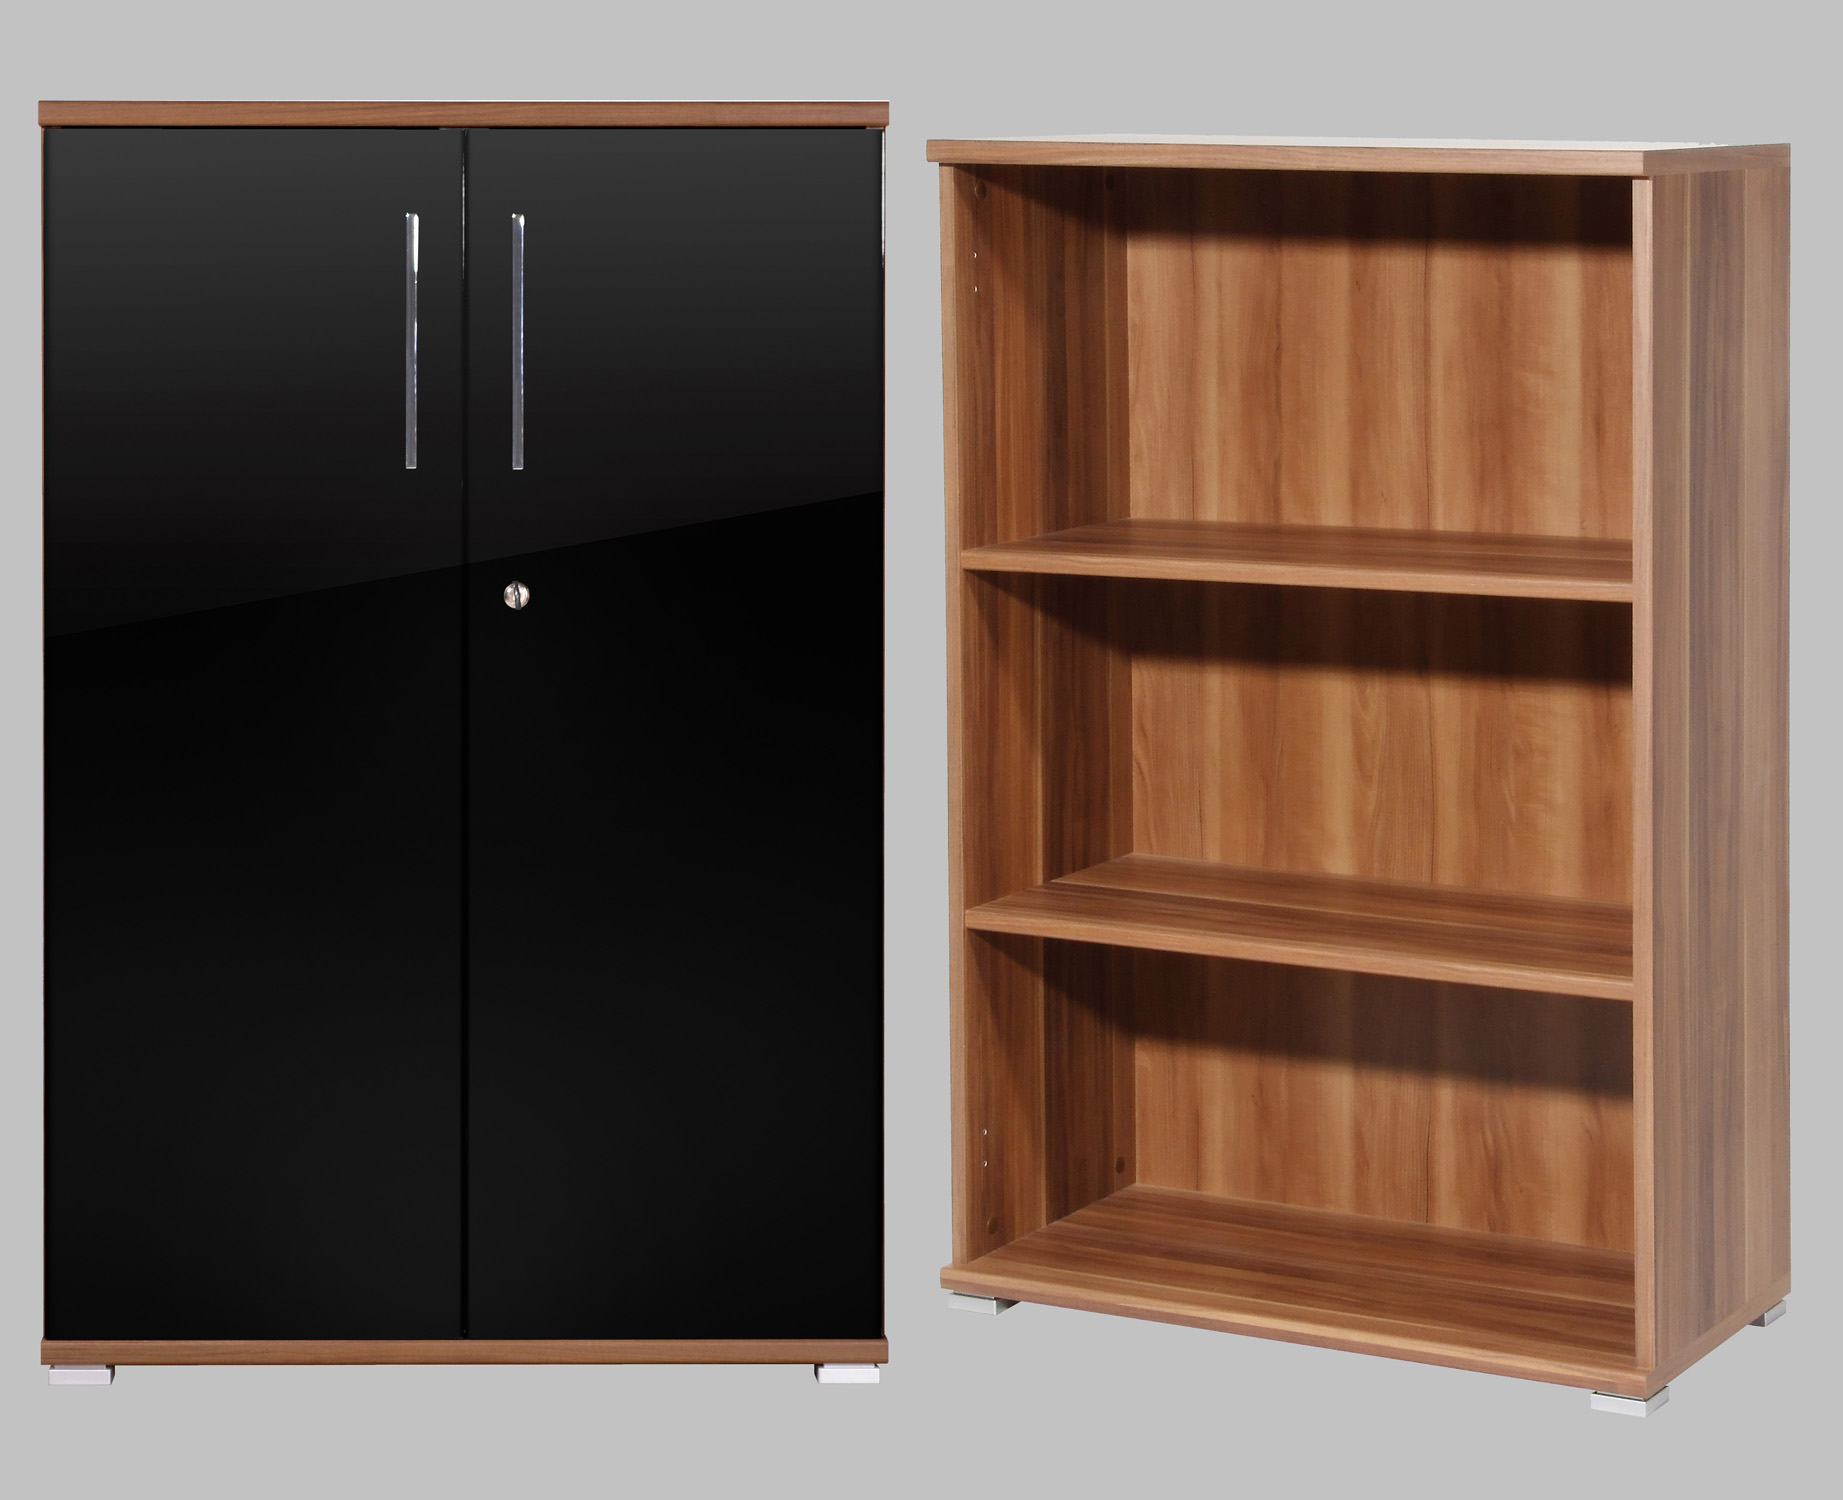 b ro aktenschrank abschlie bar kommode schrank walnuss schwarz hochglanz ebay. Black Bedroom Furniture Sets. Home Design Ideas